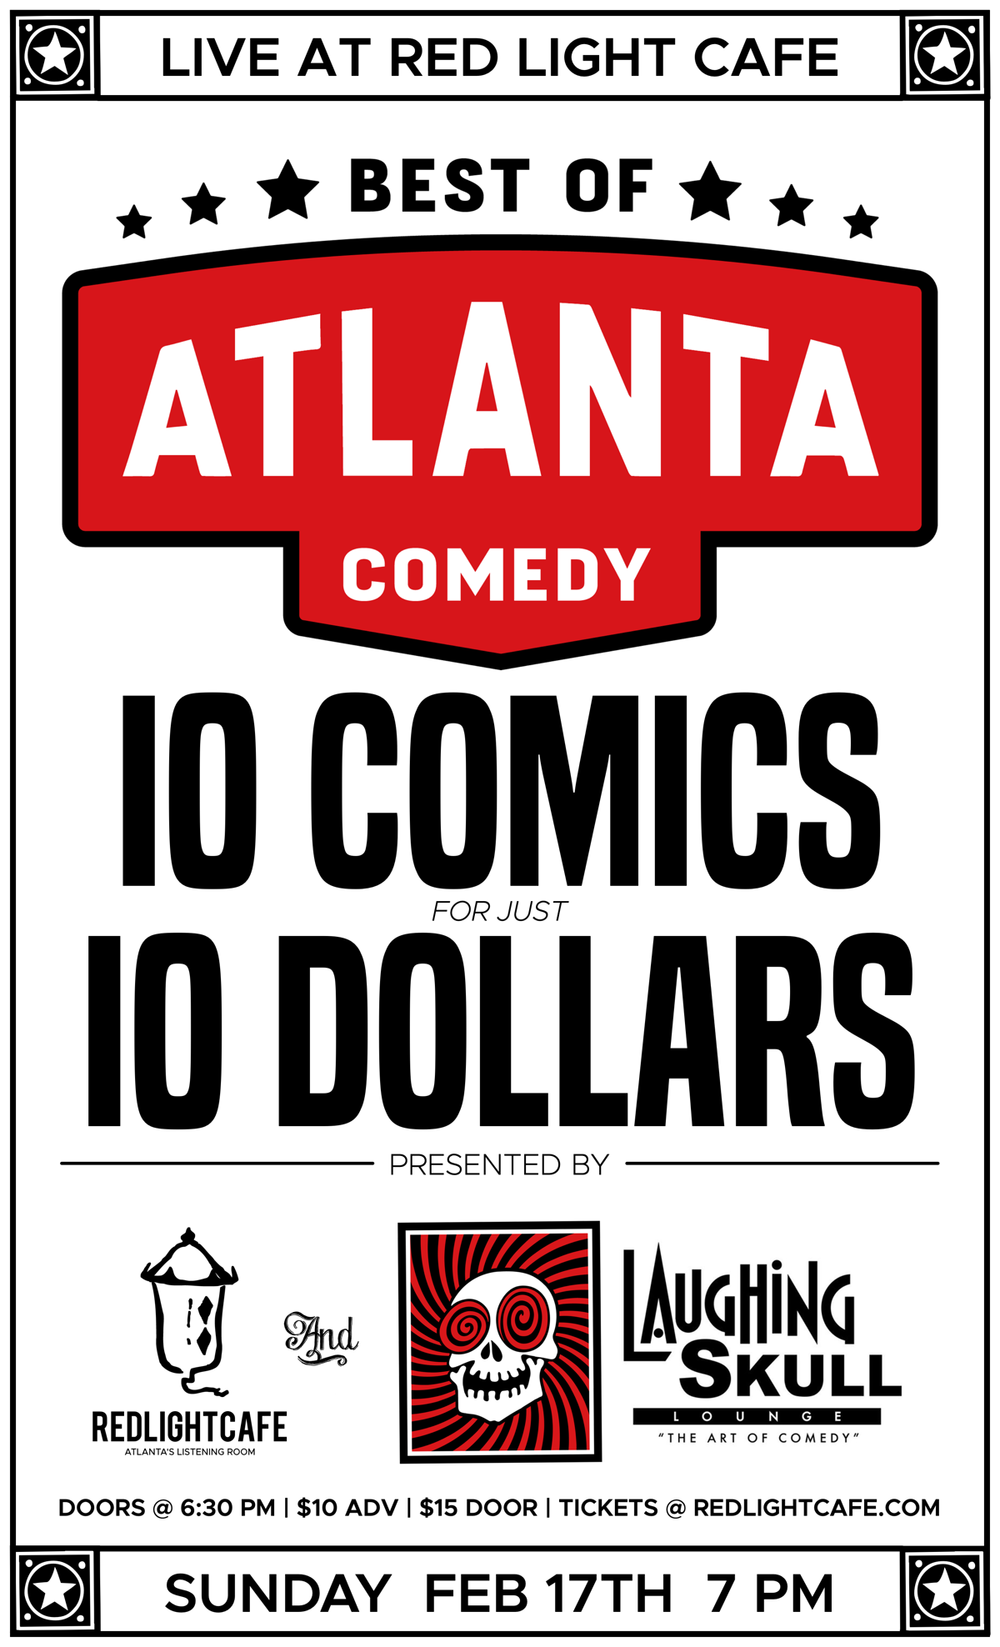 Best of Atlanta Comedy at Red Light Café presented by Laughing Skull Lounge — February 17, 2019 — Red Light Café, Atlanta, GA